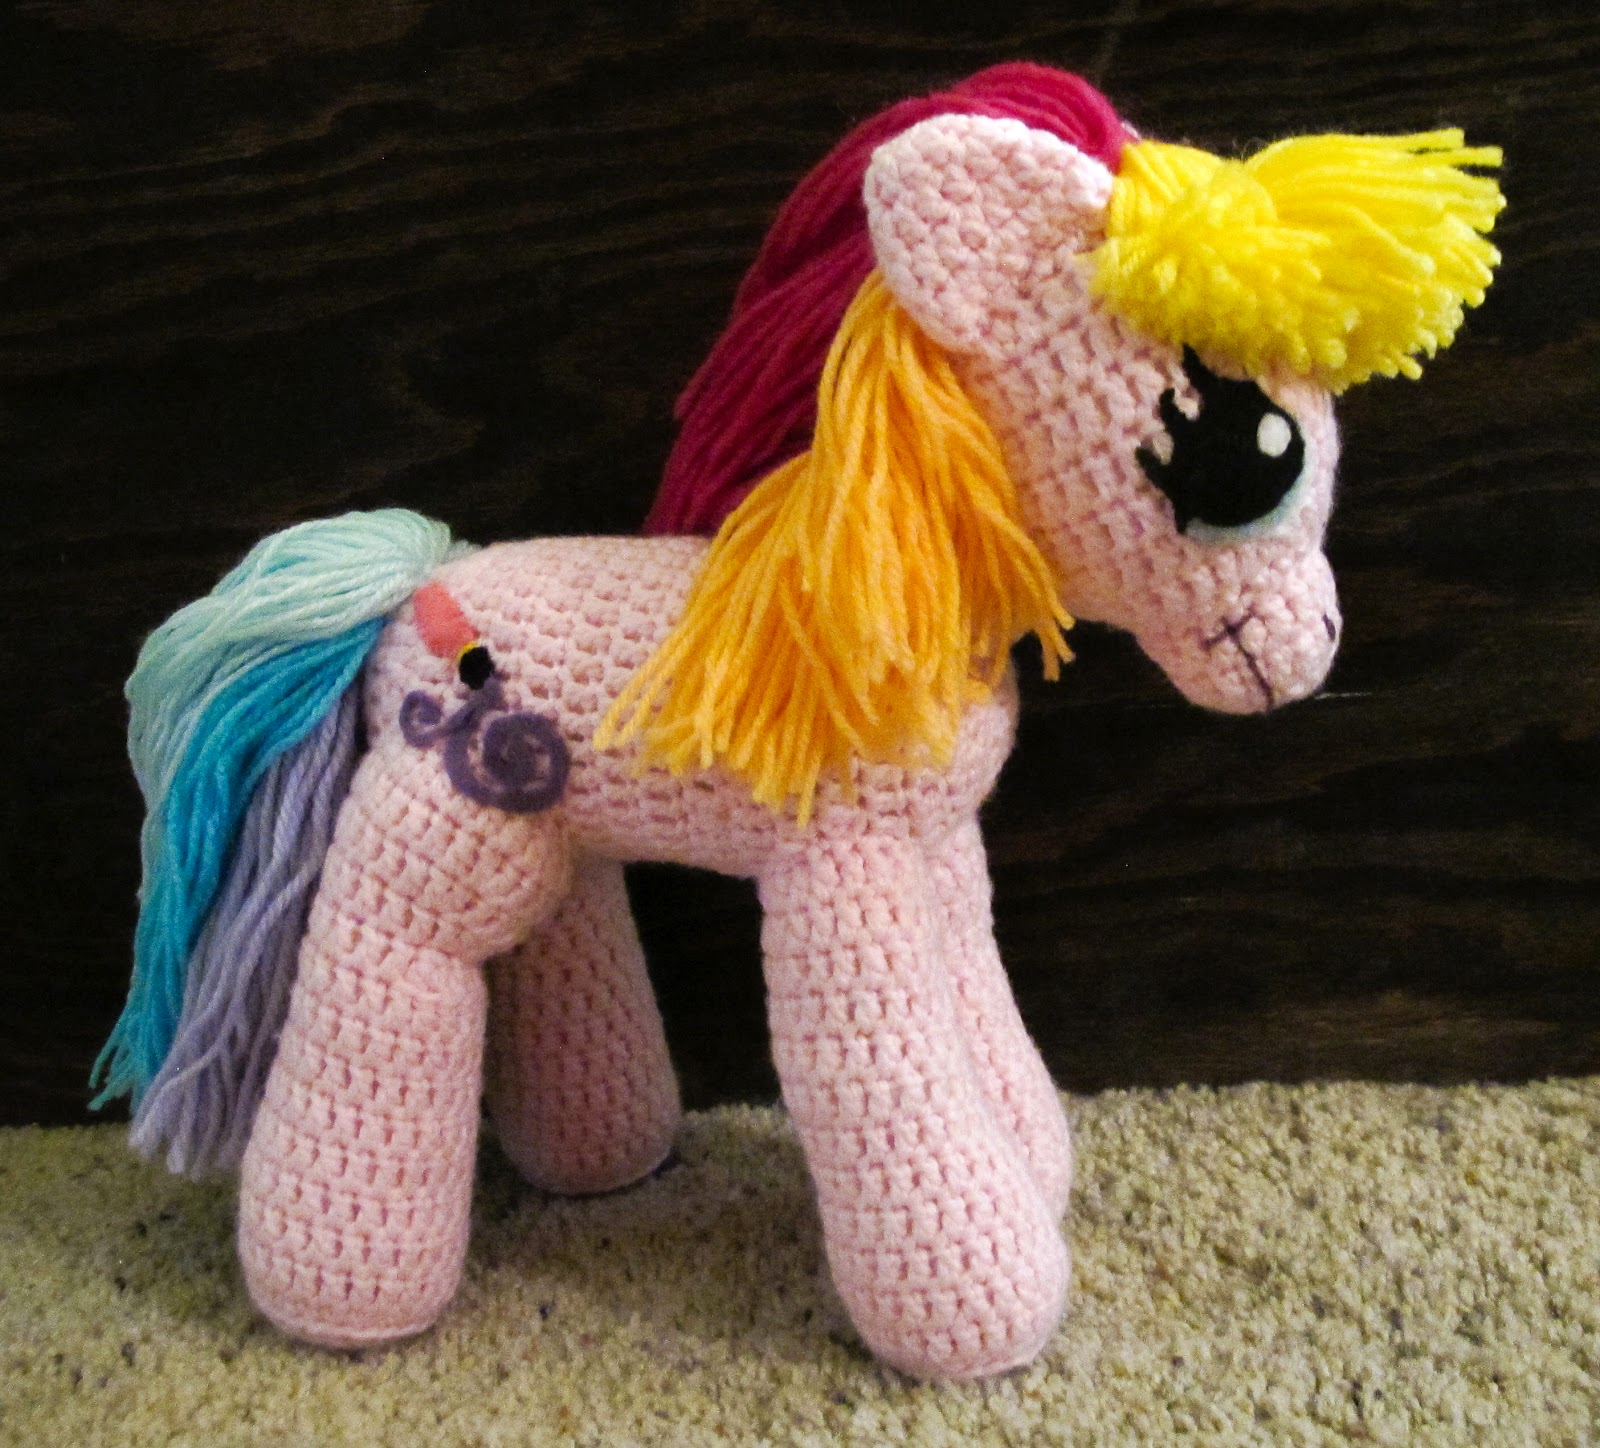 Amigurumi Pattern My Little Pony : The Serial Craftress: Toola Roola Amigurumi